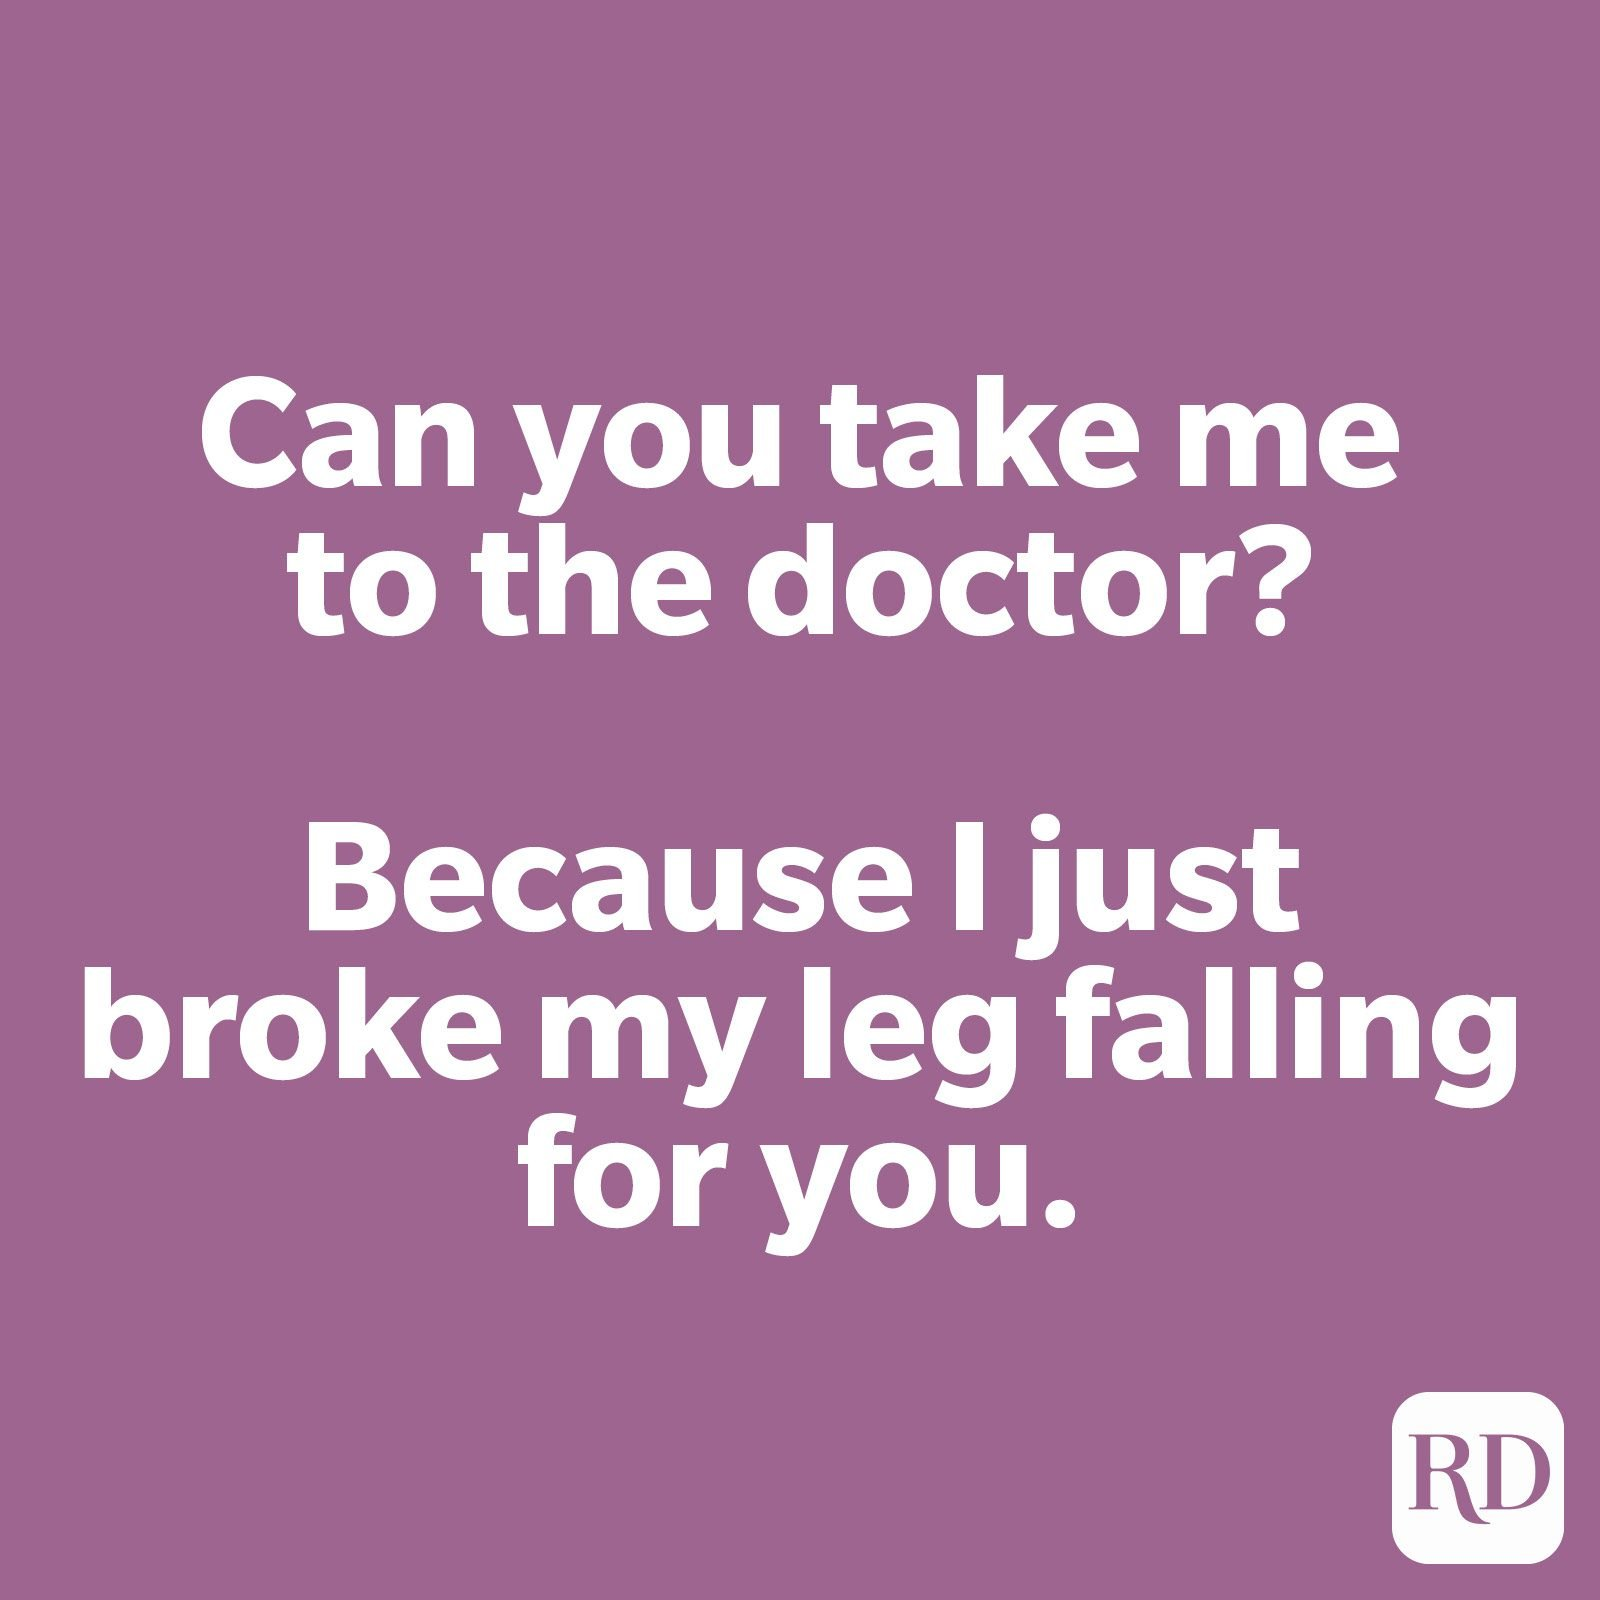 Can you take me to the doctor? Because I just broke my leg falling for you.